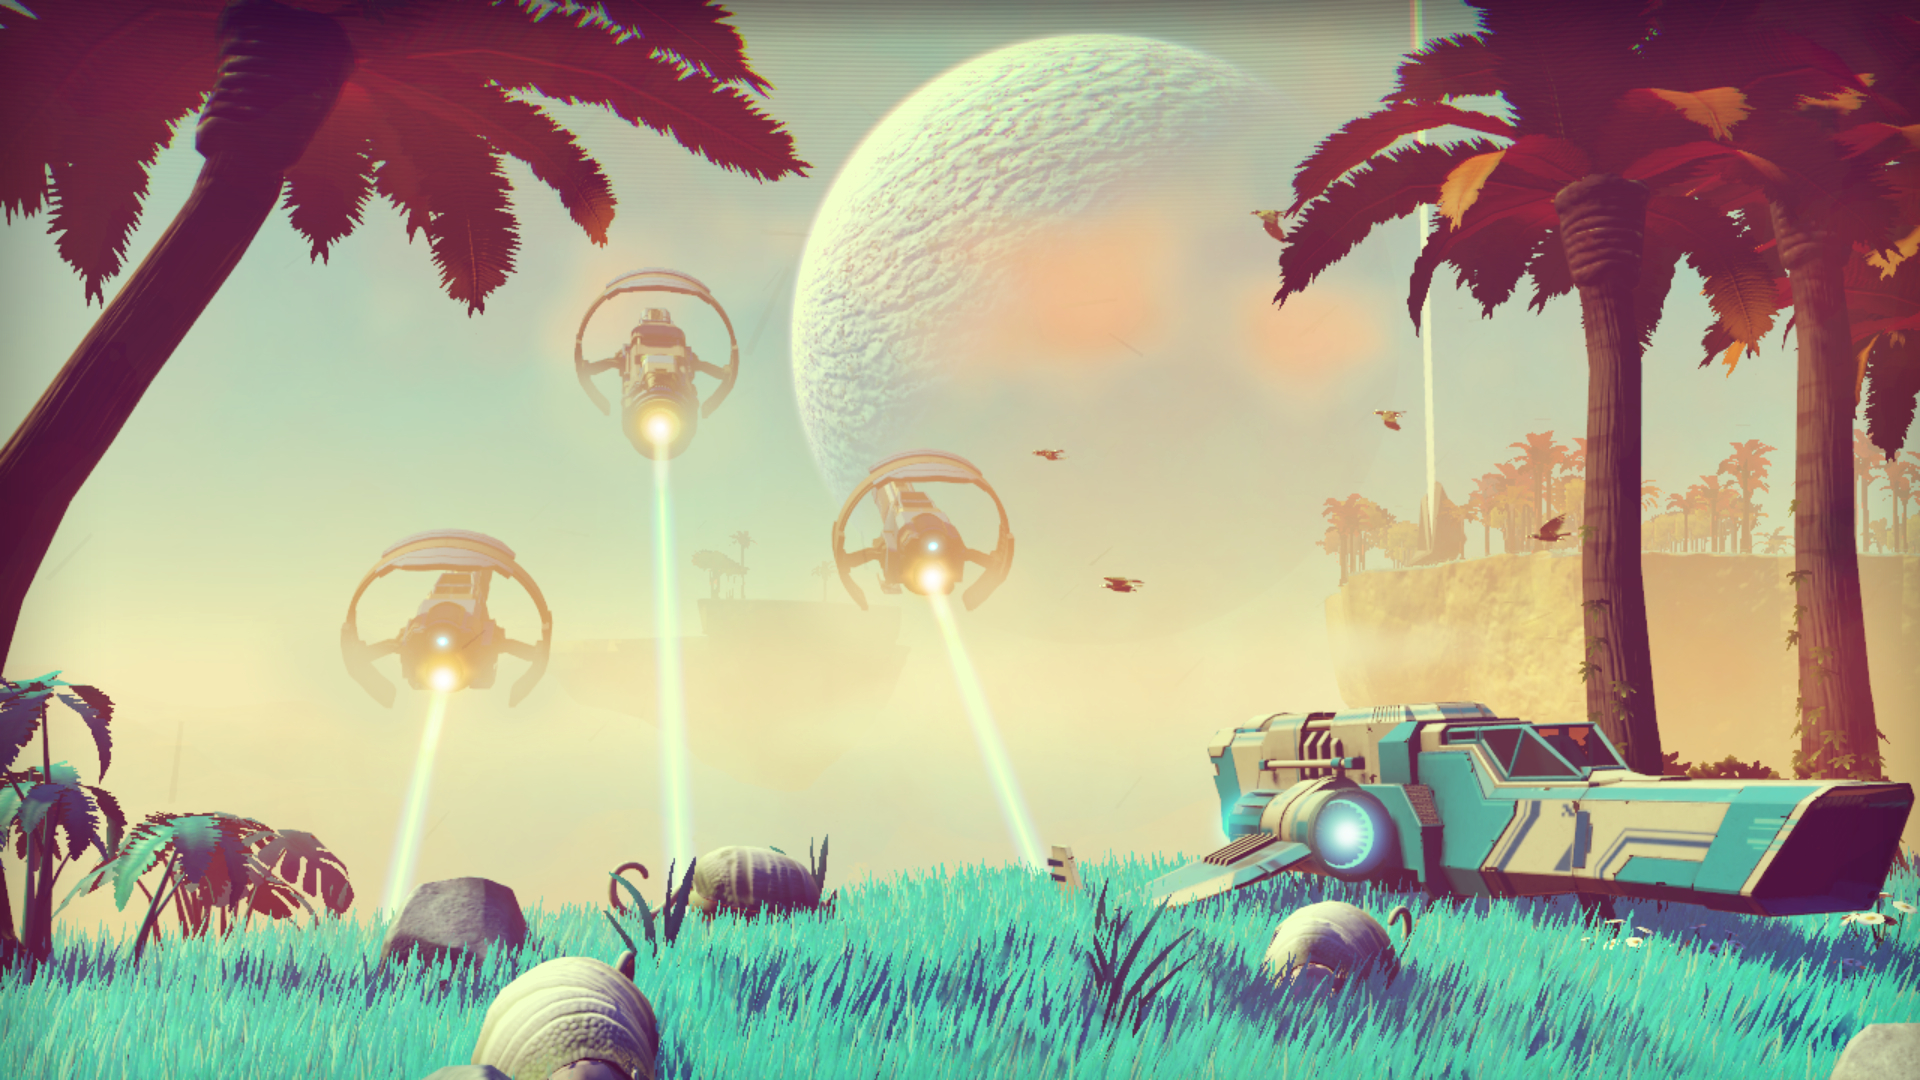 Free Download No Mans Sky Hd Wallpapers 2015 All Hd Wallpapers